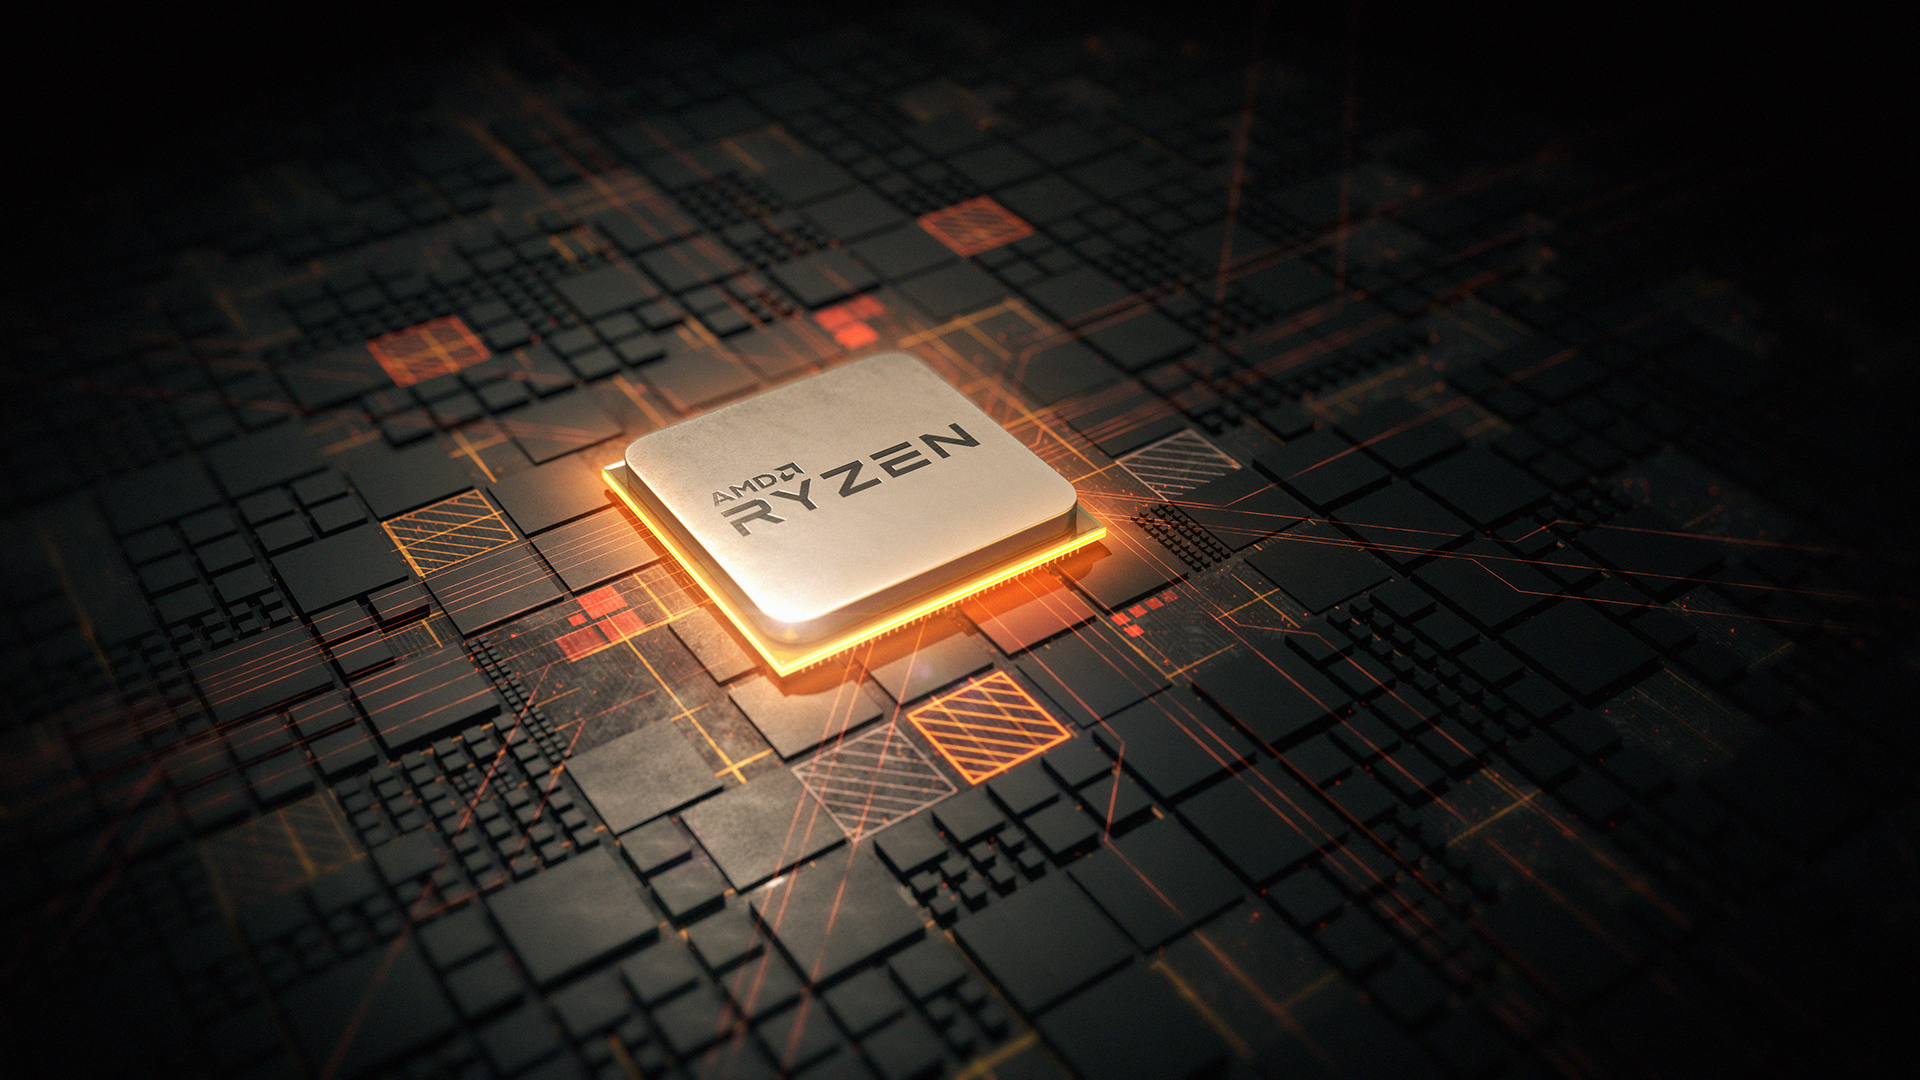 6-core AMD Ryzen APU spotted: could this be a new budget champion? thumbnail